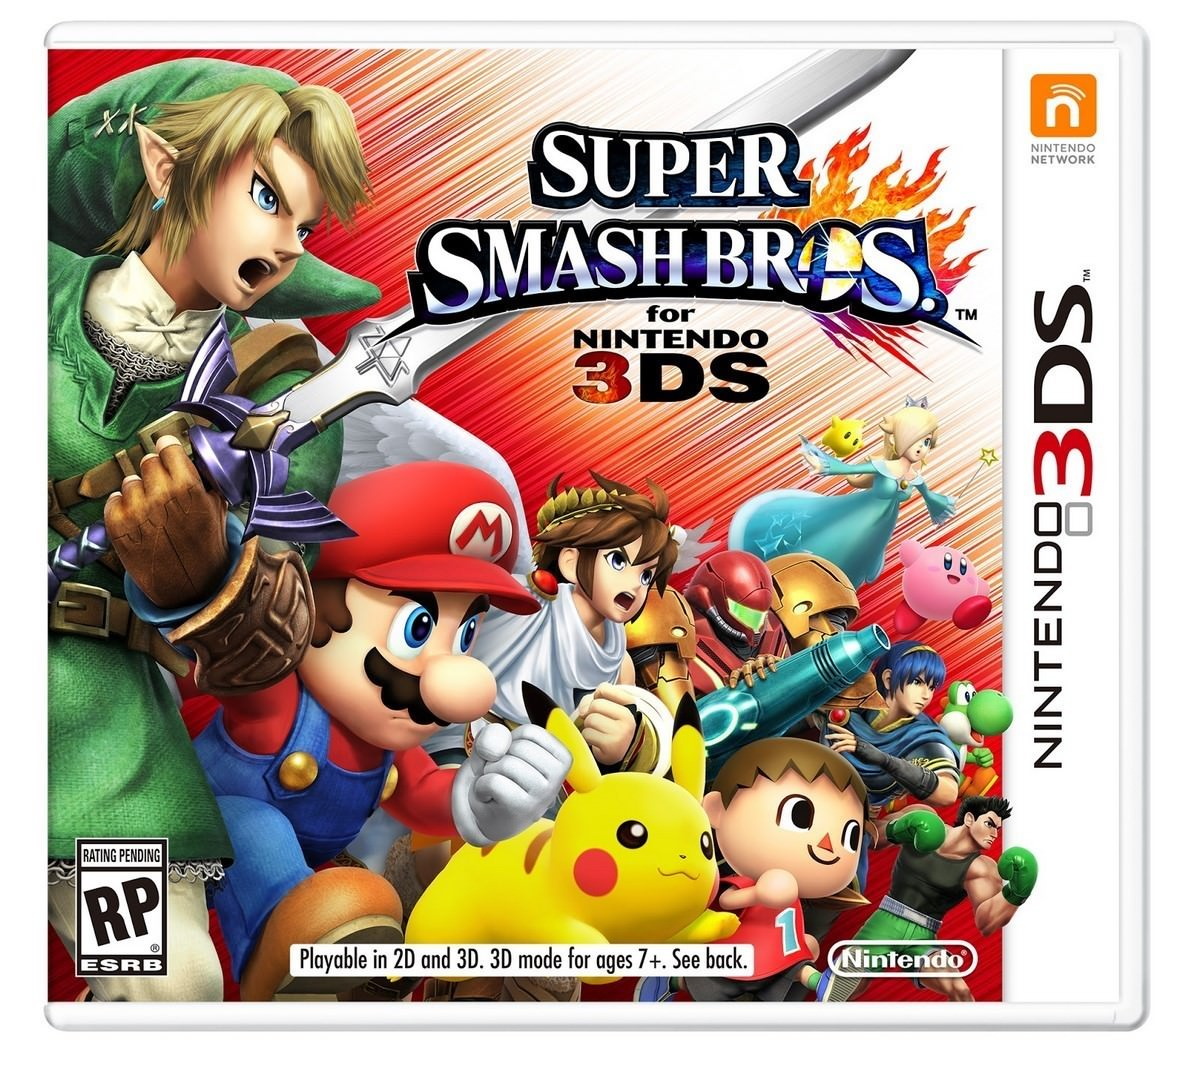 Super_Smash_Bros_3DS_Box_Art